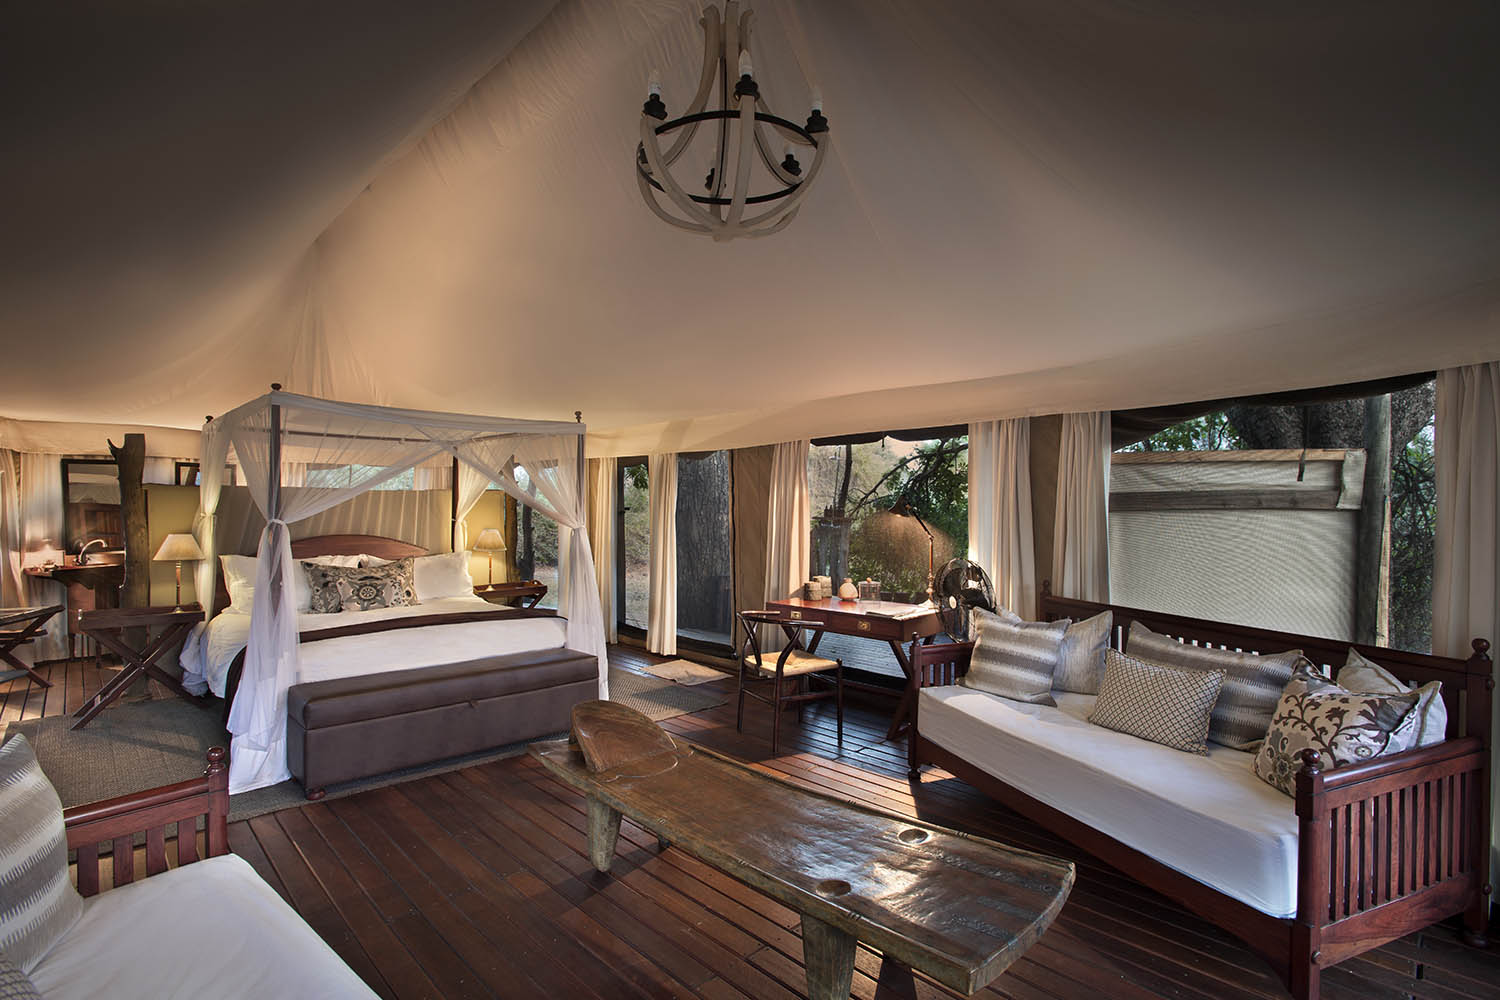 kanga bush camp mana-pools-national-park-lodges-zimbabwe-accommodation-african-bush-camps-bedroom